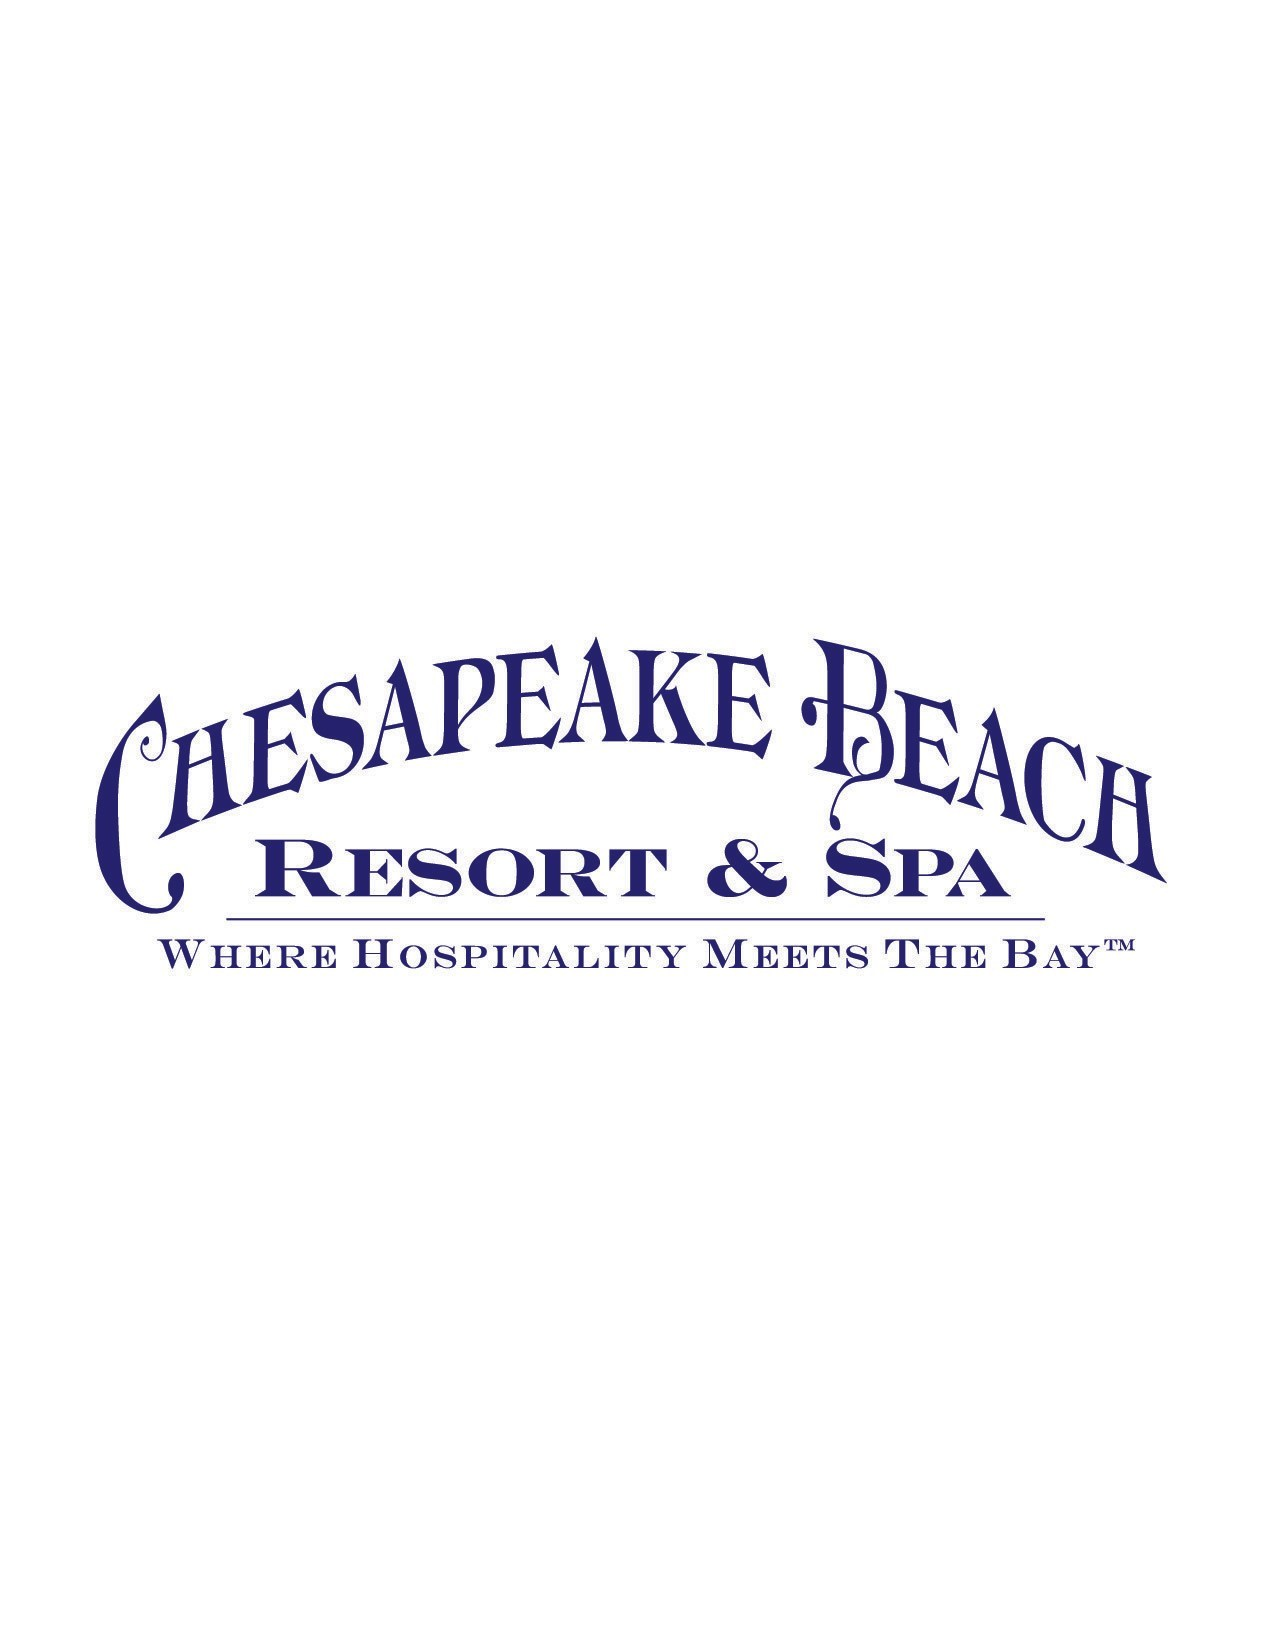 chesapeake beach hispanic single women Find 304 listings related to women in chesapeake beach on ypcom see reviews, photos, directions, phone numbers and more for women locations in chesapeake beach, md.